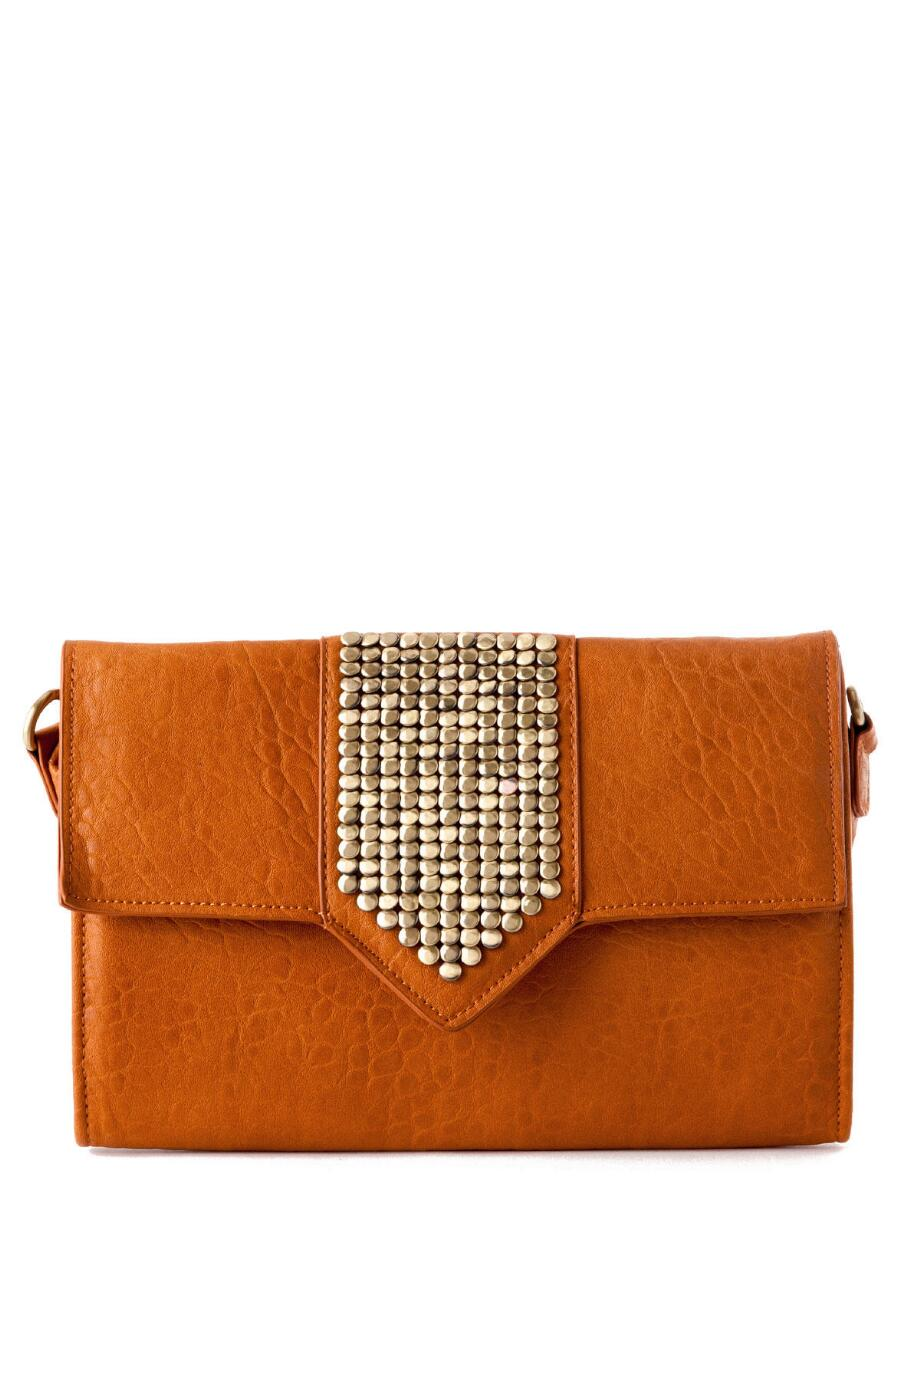 Brooklyn Stud Flap Clutch